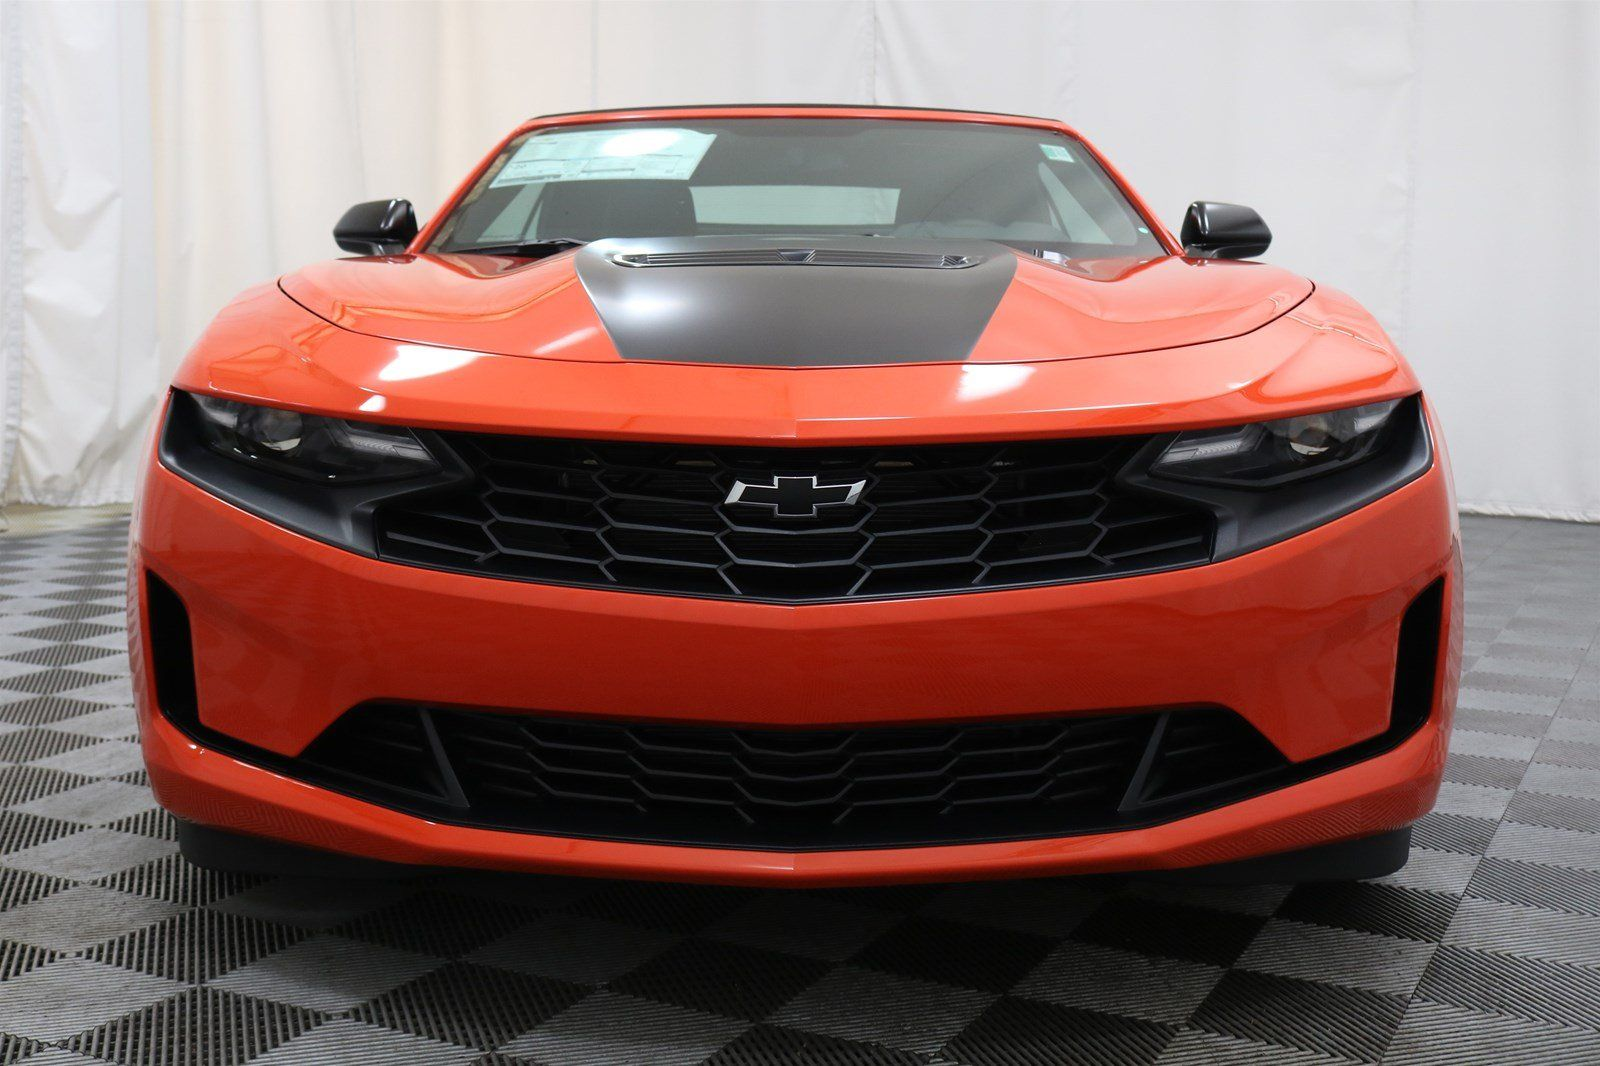 2020 Chevrolet Camaro LT1 Convertible Review, Ratings, MPG ...